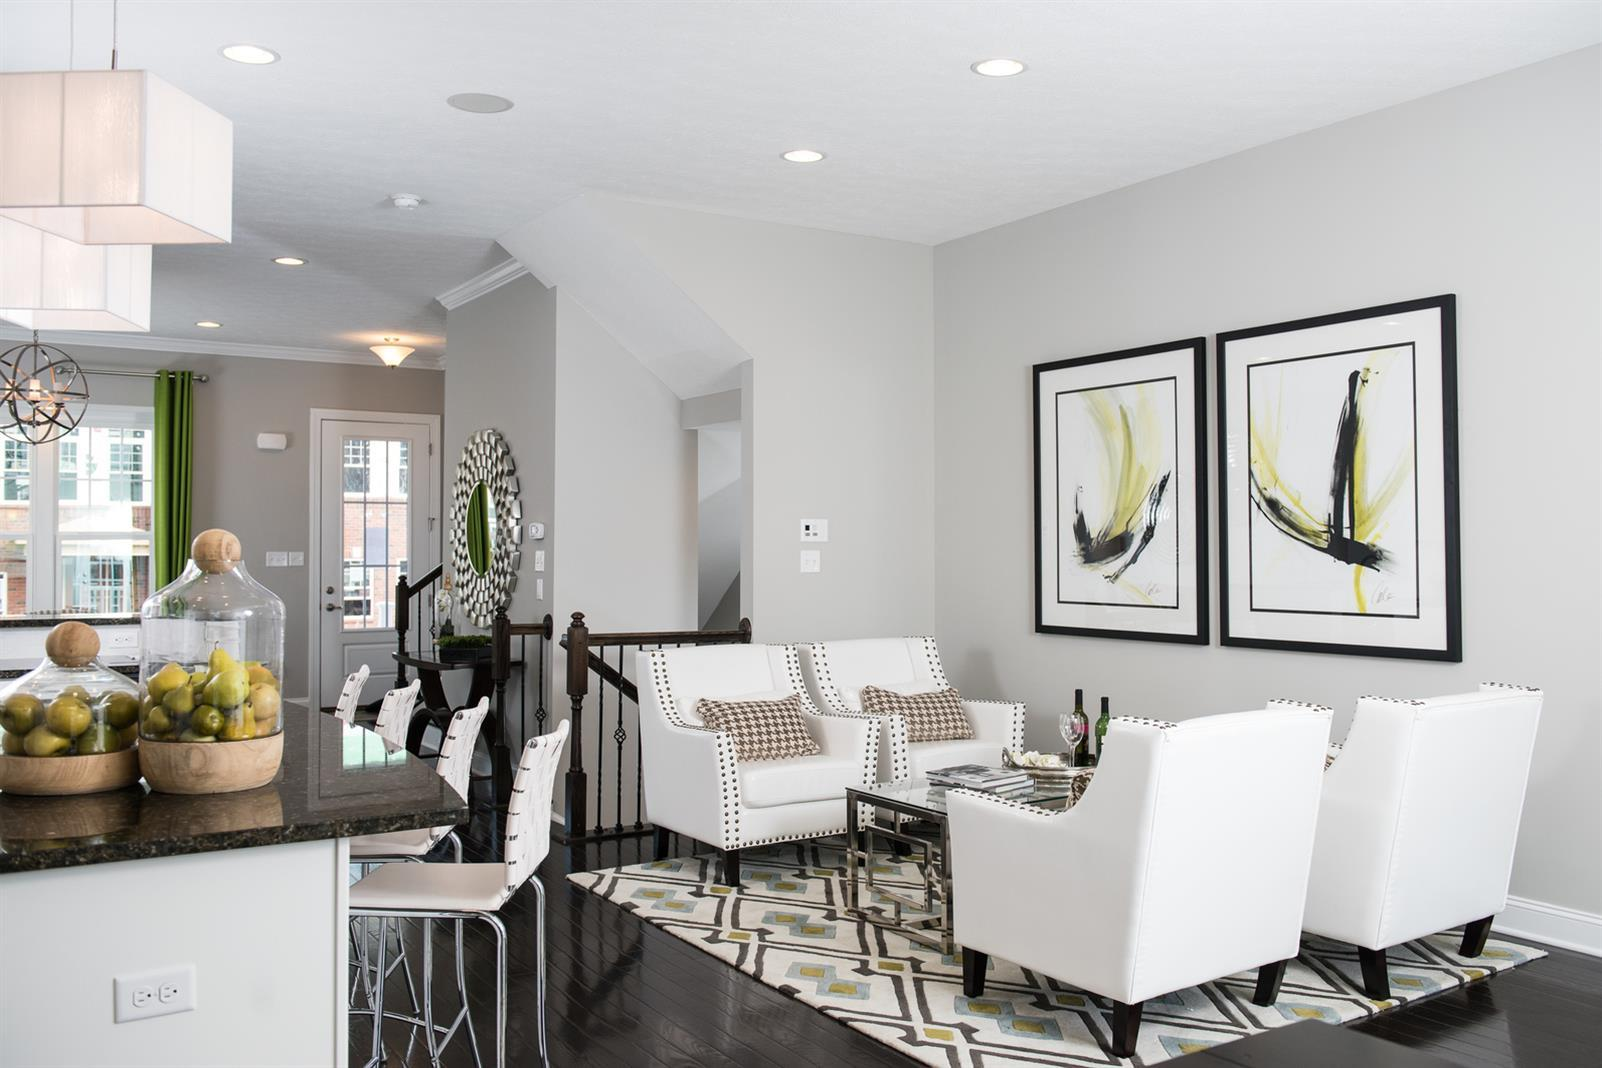 Greatroom-and-Dining-in-Schubert-at-Silver Summit Townhomes-in-McKees Rocks